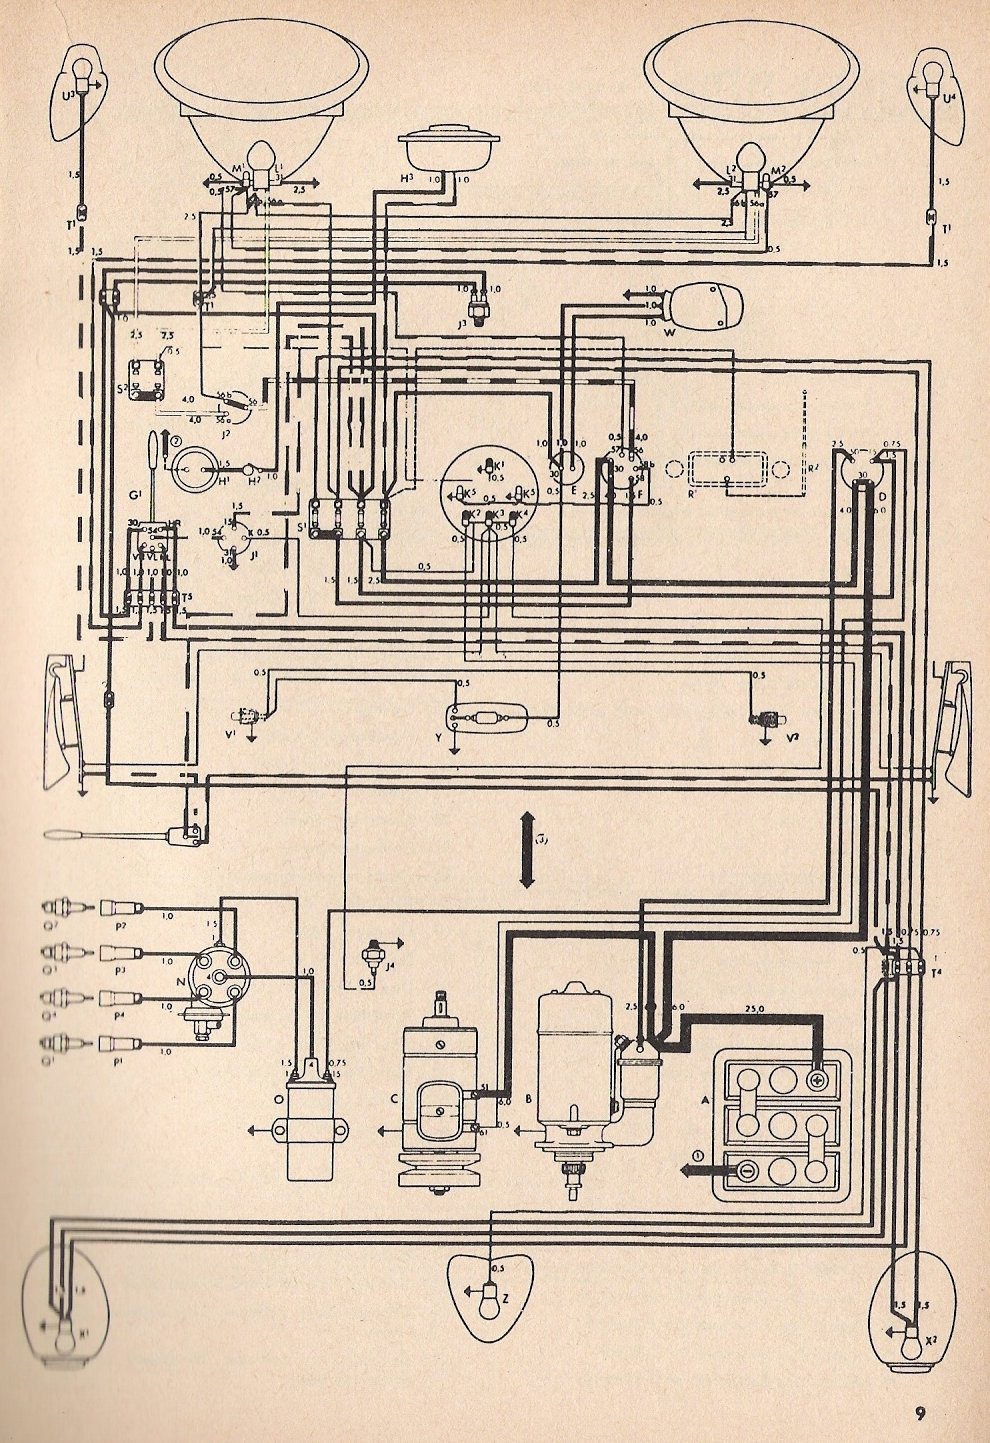 hight resolution of 72 bug wiring diagram